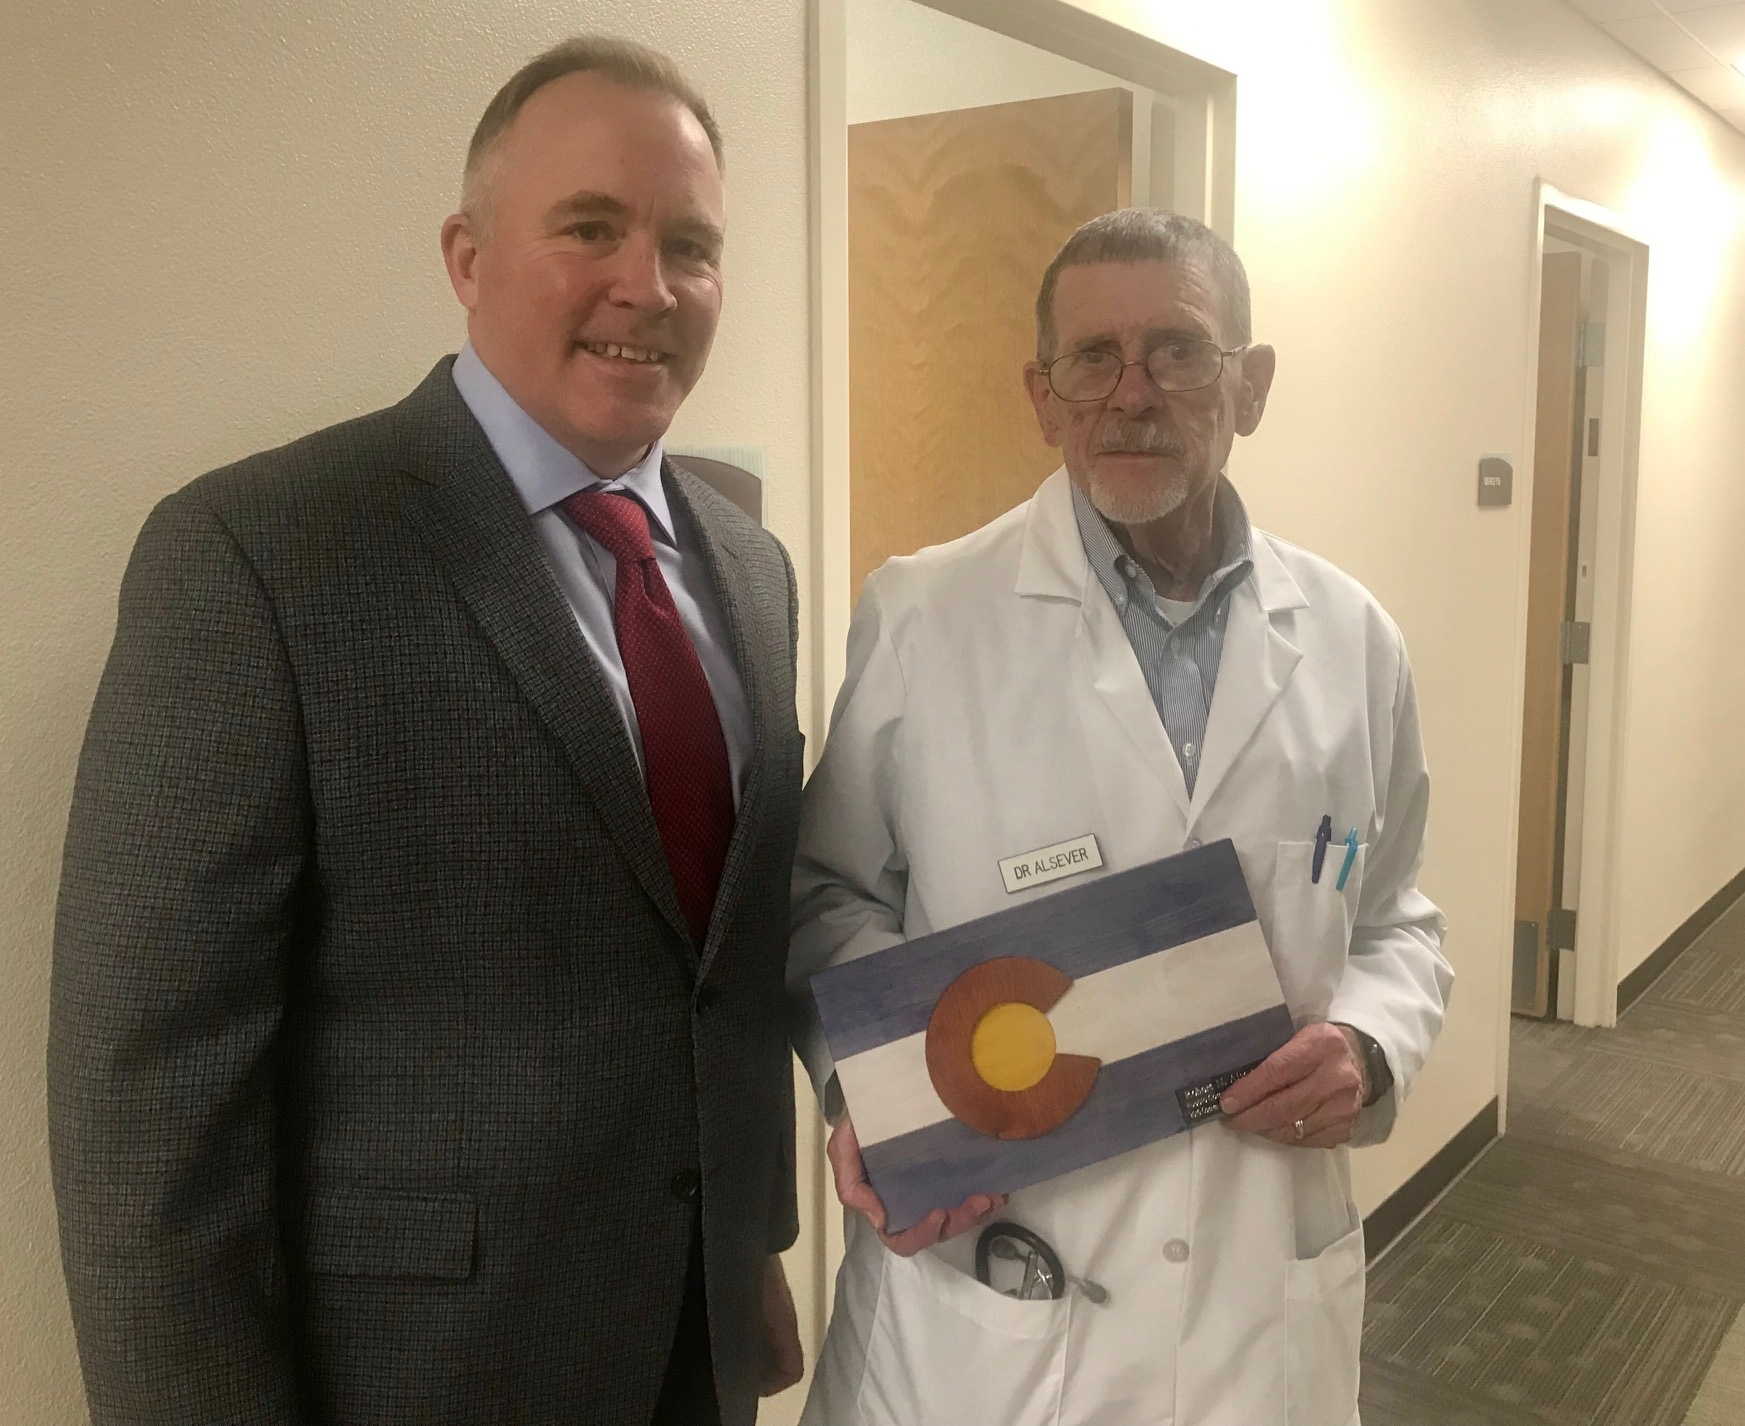 Donald Moore pictured with Dr. Alsever